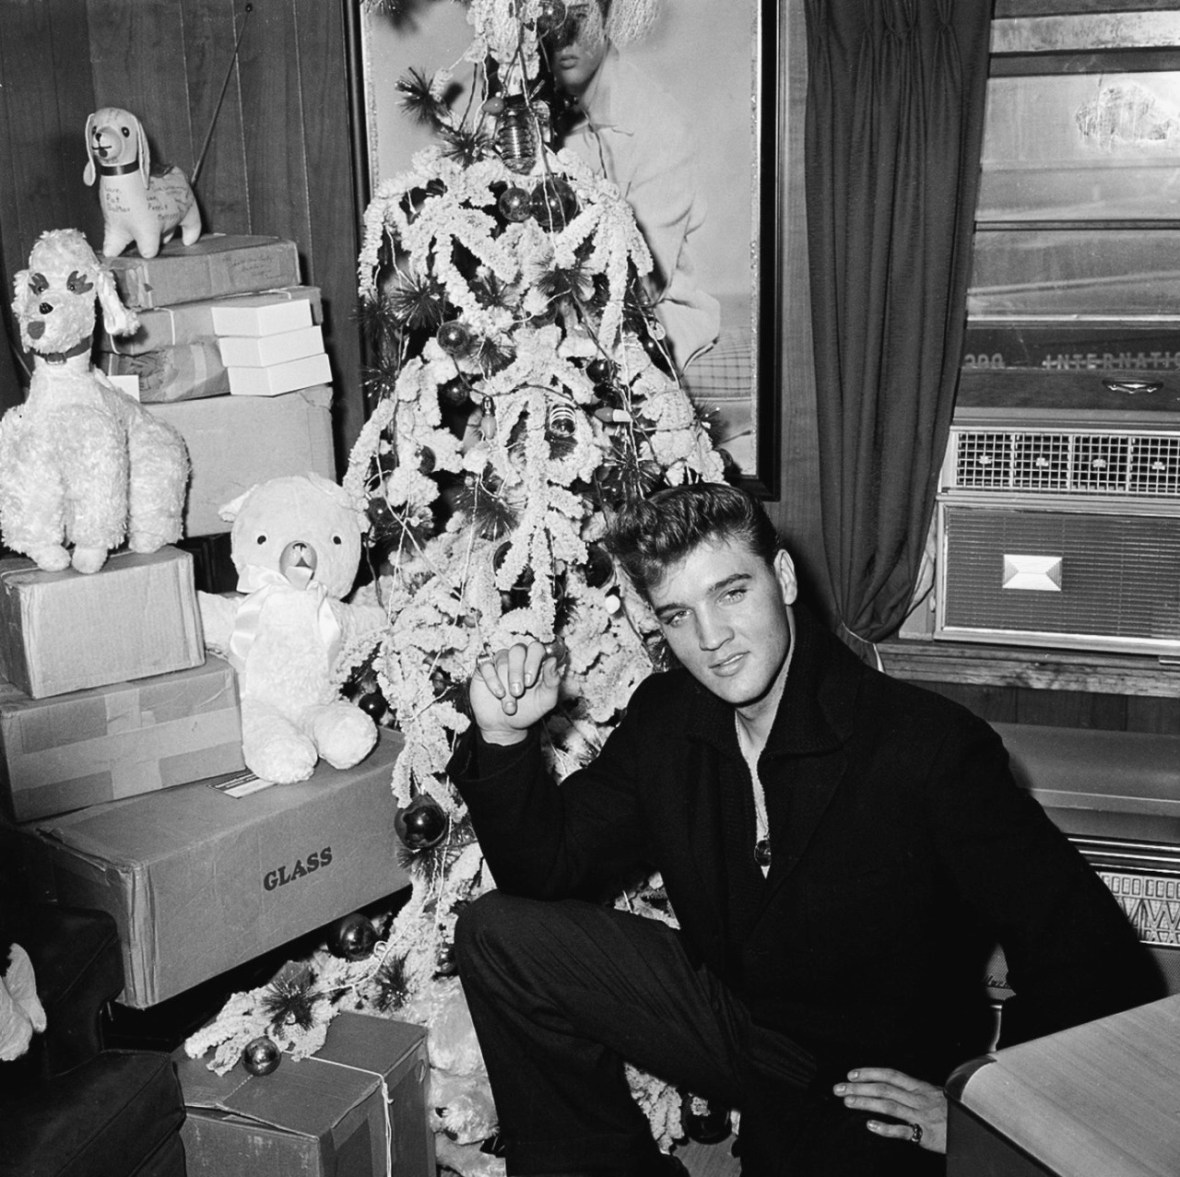 Elvis Presley - at his home in Memphis, Tennessee U.S.A. - 1957